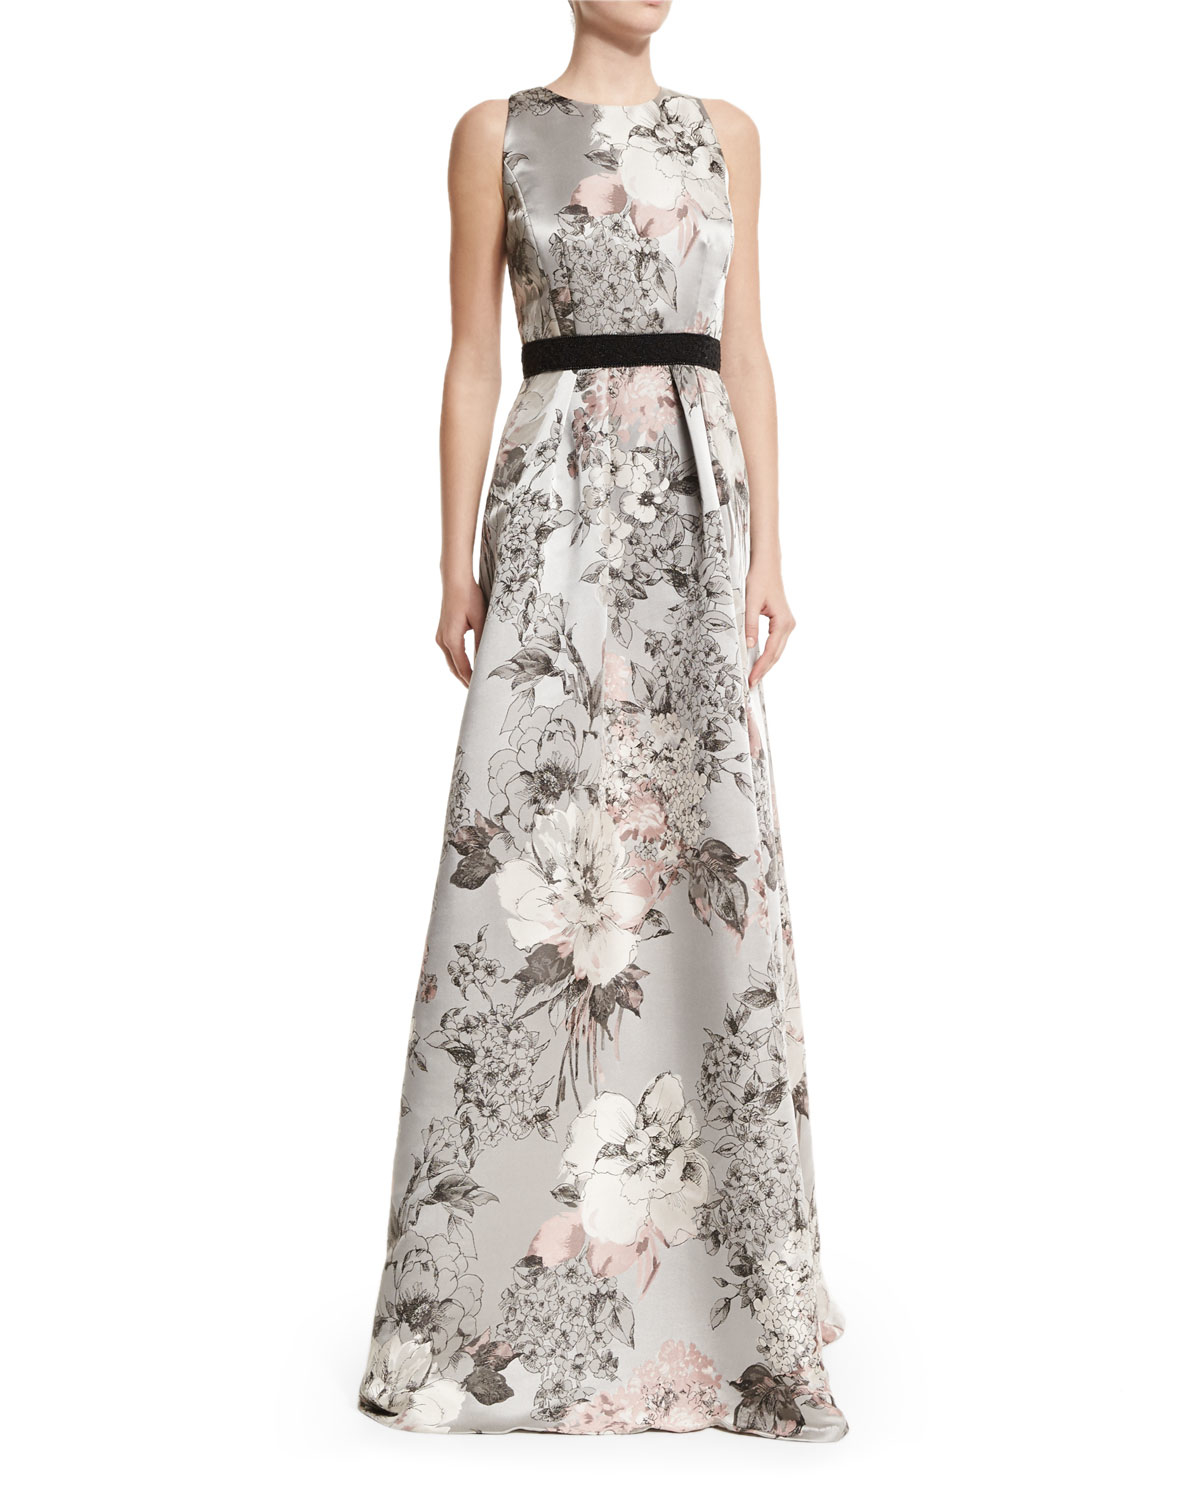 d46bfc146cee Carmen Marc Valvo Sleeveless Floral-print Gown in Natural - Lyst